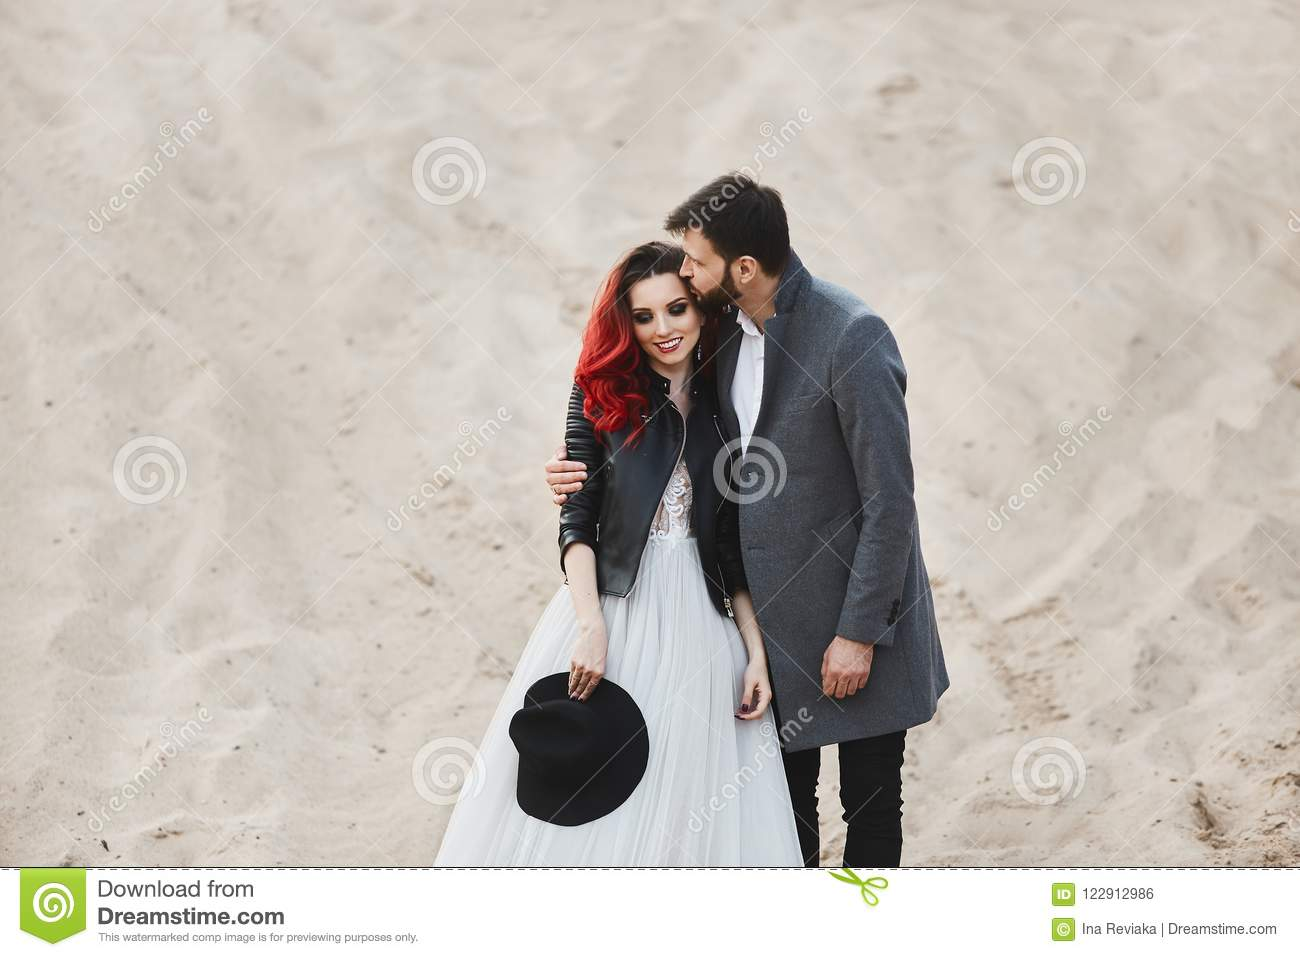 Fashionable And Stylish Couple Model Girl With Red Hair And